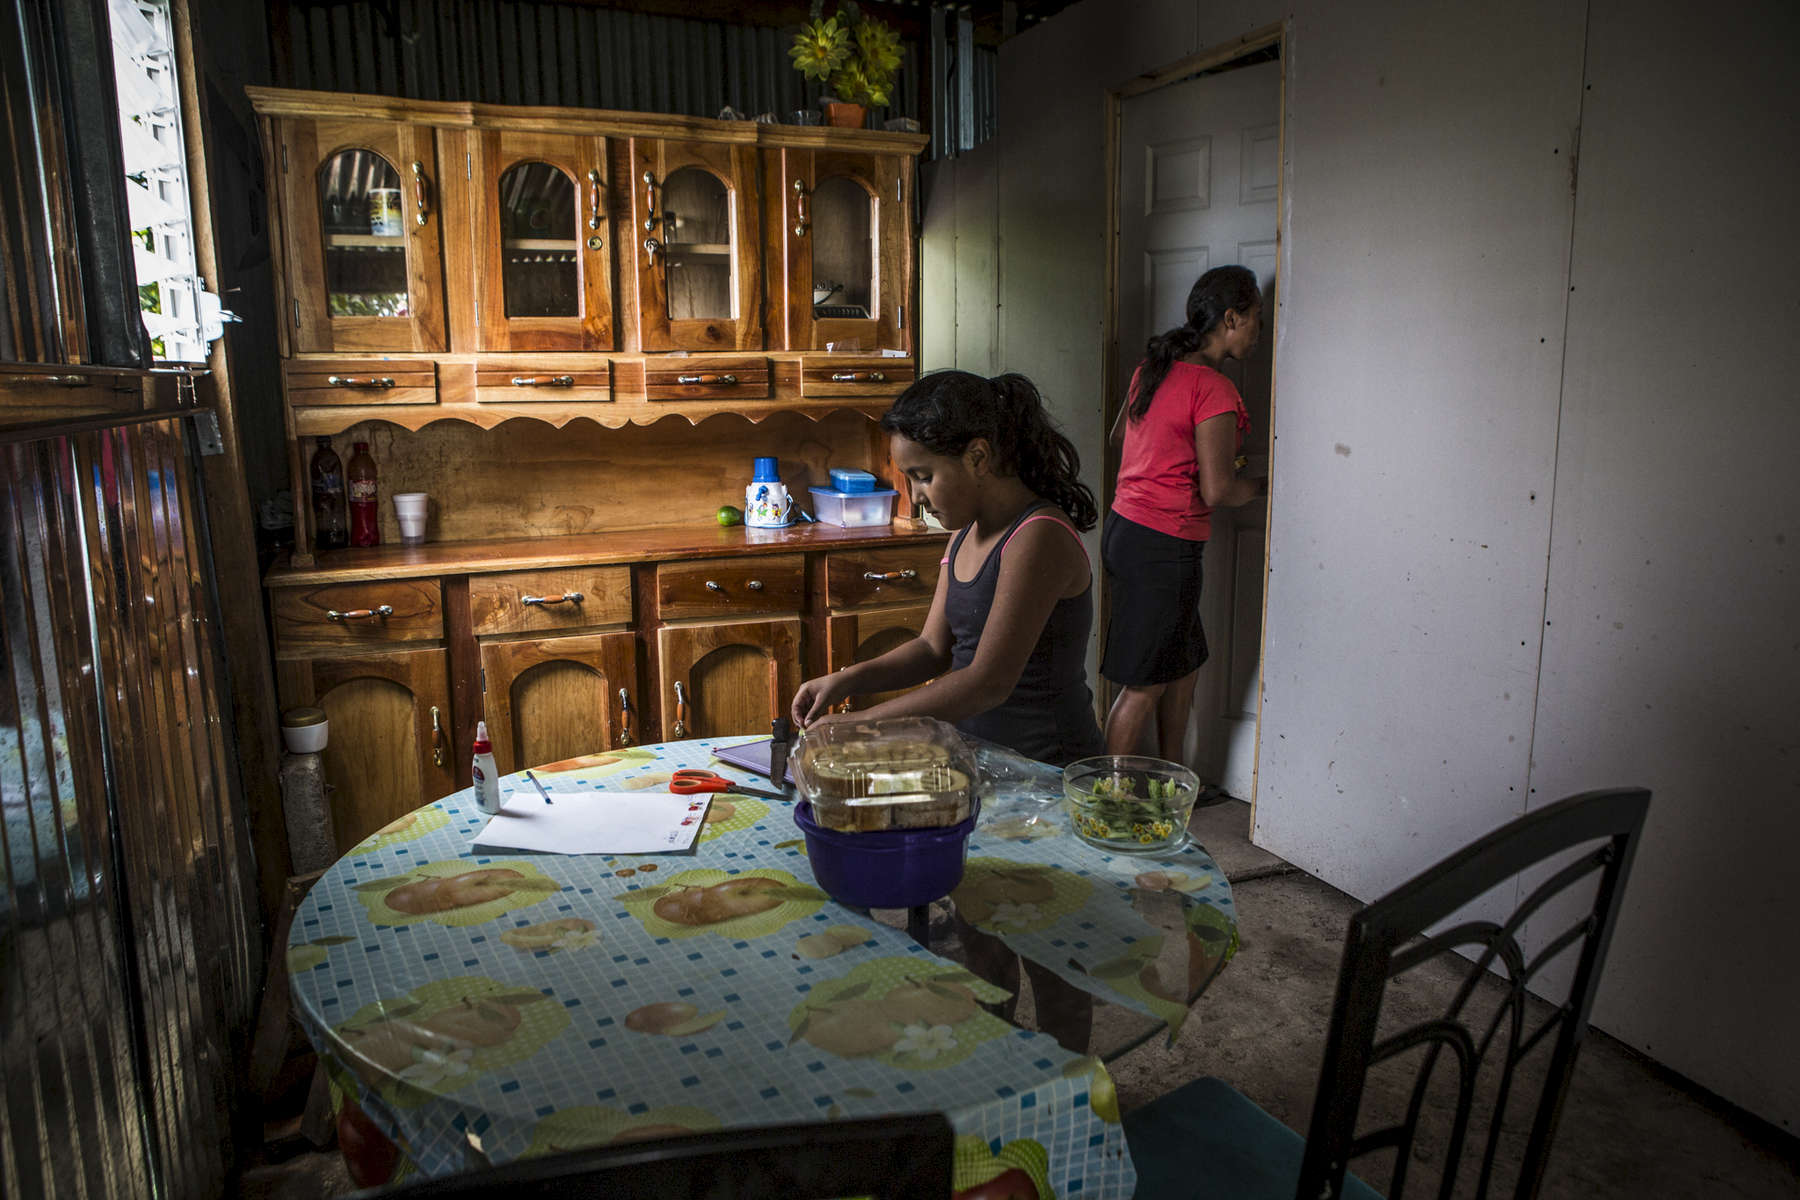 Nejapa, El Salvador- Priscilla Perez, 32, with her niece Aixa Ortiz, 9, make lunch at their home in San Jeronimo Los Planes, Nejapa, El Salvador June 2018. Water is collected during the rainy season in the communal tank and sold for 10 cents a jug during the dry season, money raised is used to fund water trucks once the tank runs dry (usually the tank only lasts for two months into the dry season). Unfortunately the roof was lost during a recent hurricane and very little water has been collected since, worrying the Perez family. Nejapa is not only home to a number of bottling plants including Coca Cola and Lactolac, it also lies above one of El Salvador's largest aquifers, feeding neighboring communities and much of San Salvador.The San Antonio River, once a main source of water for Nejapa, has been contaminated by the waste produced by industrial bottling plants since their arrival in 1996. Bio filtration systems were installed but have been broken since 2006. (Jane Hahn)